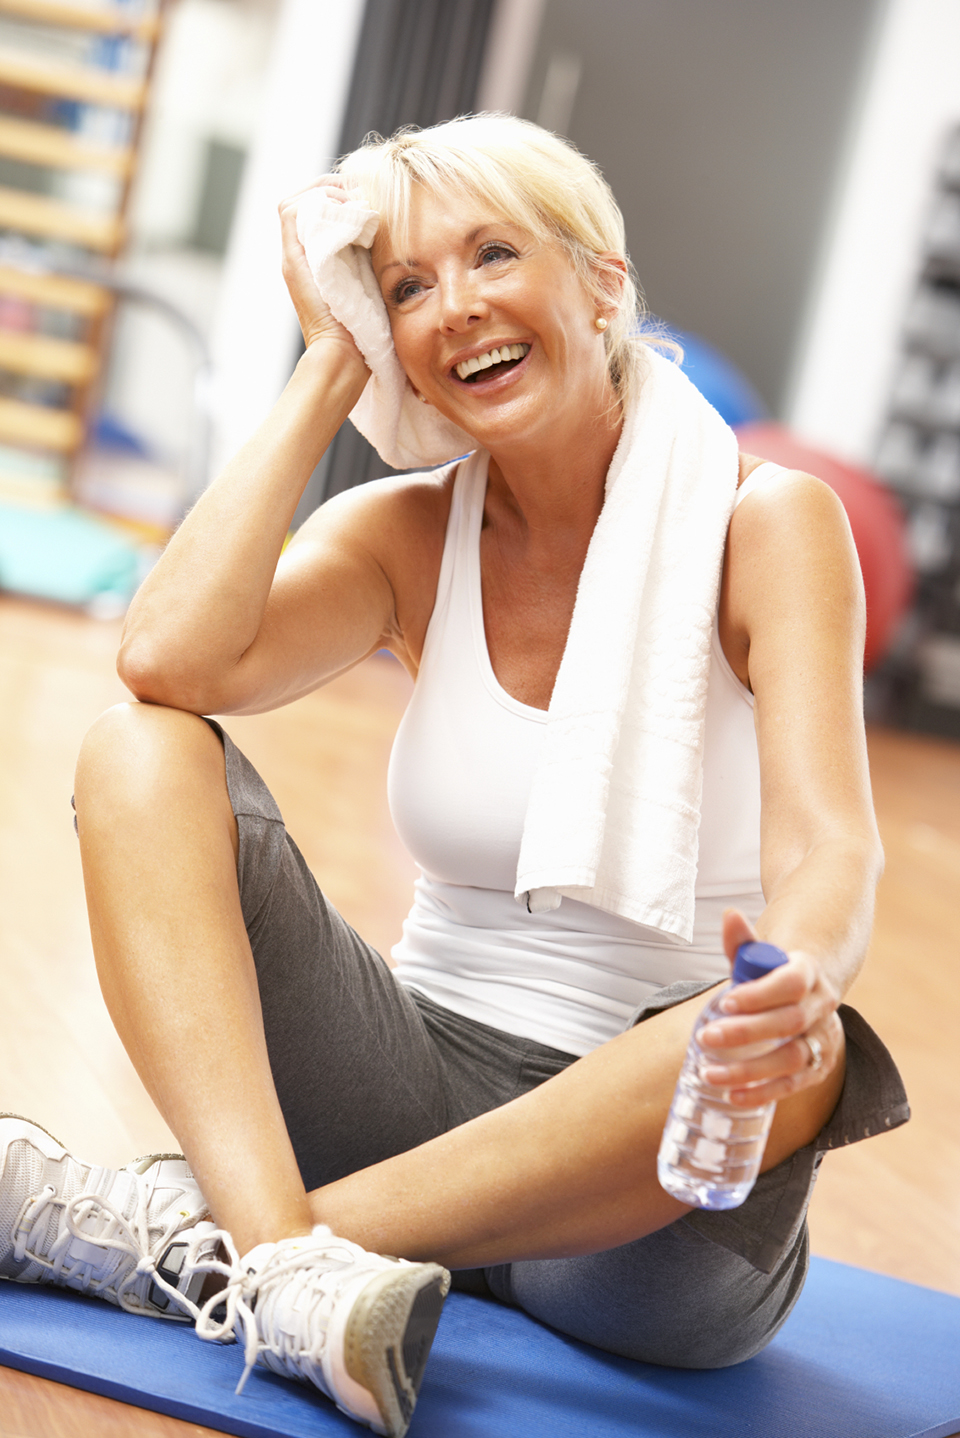 Mature Muscle Women Stock Photos, Pictures & Royalty-Free